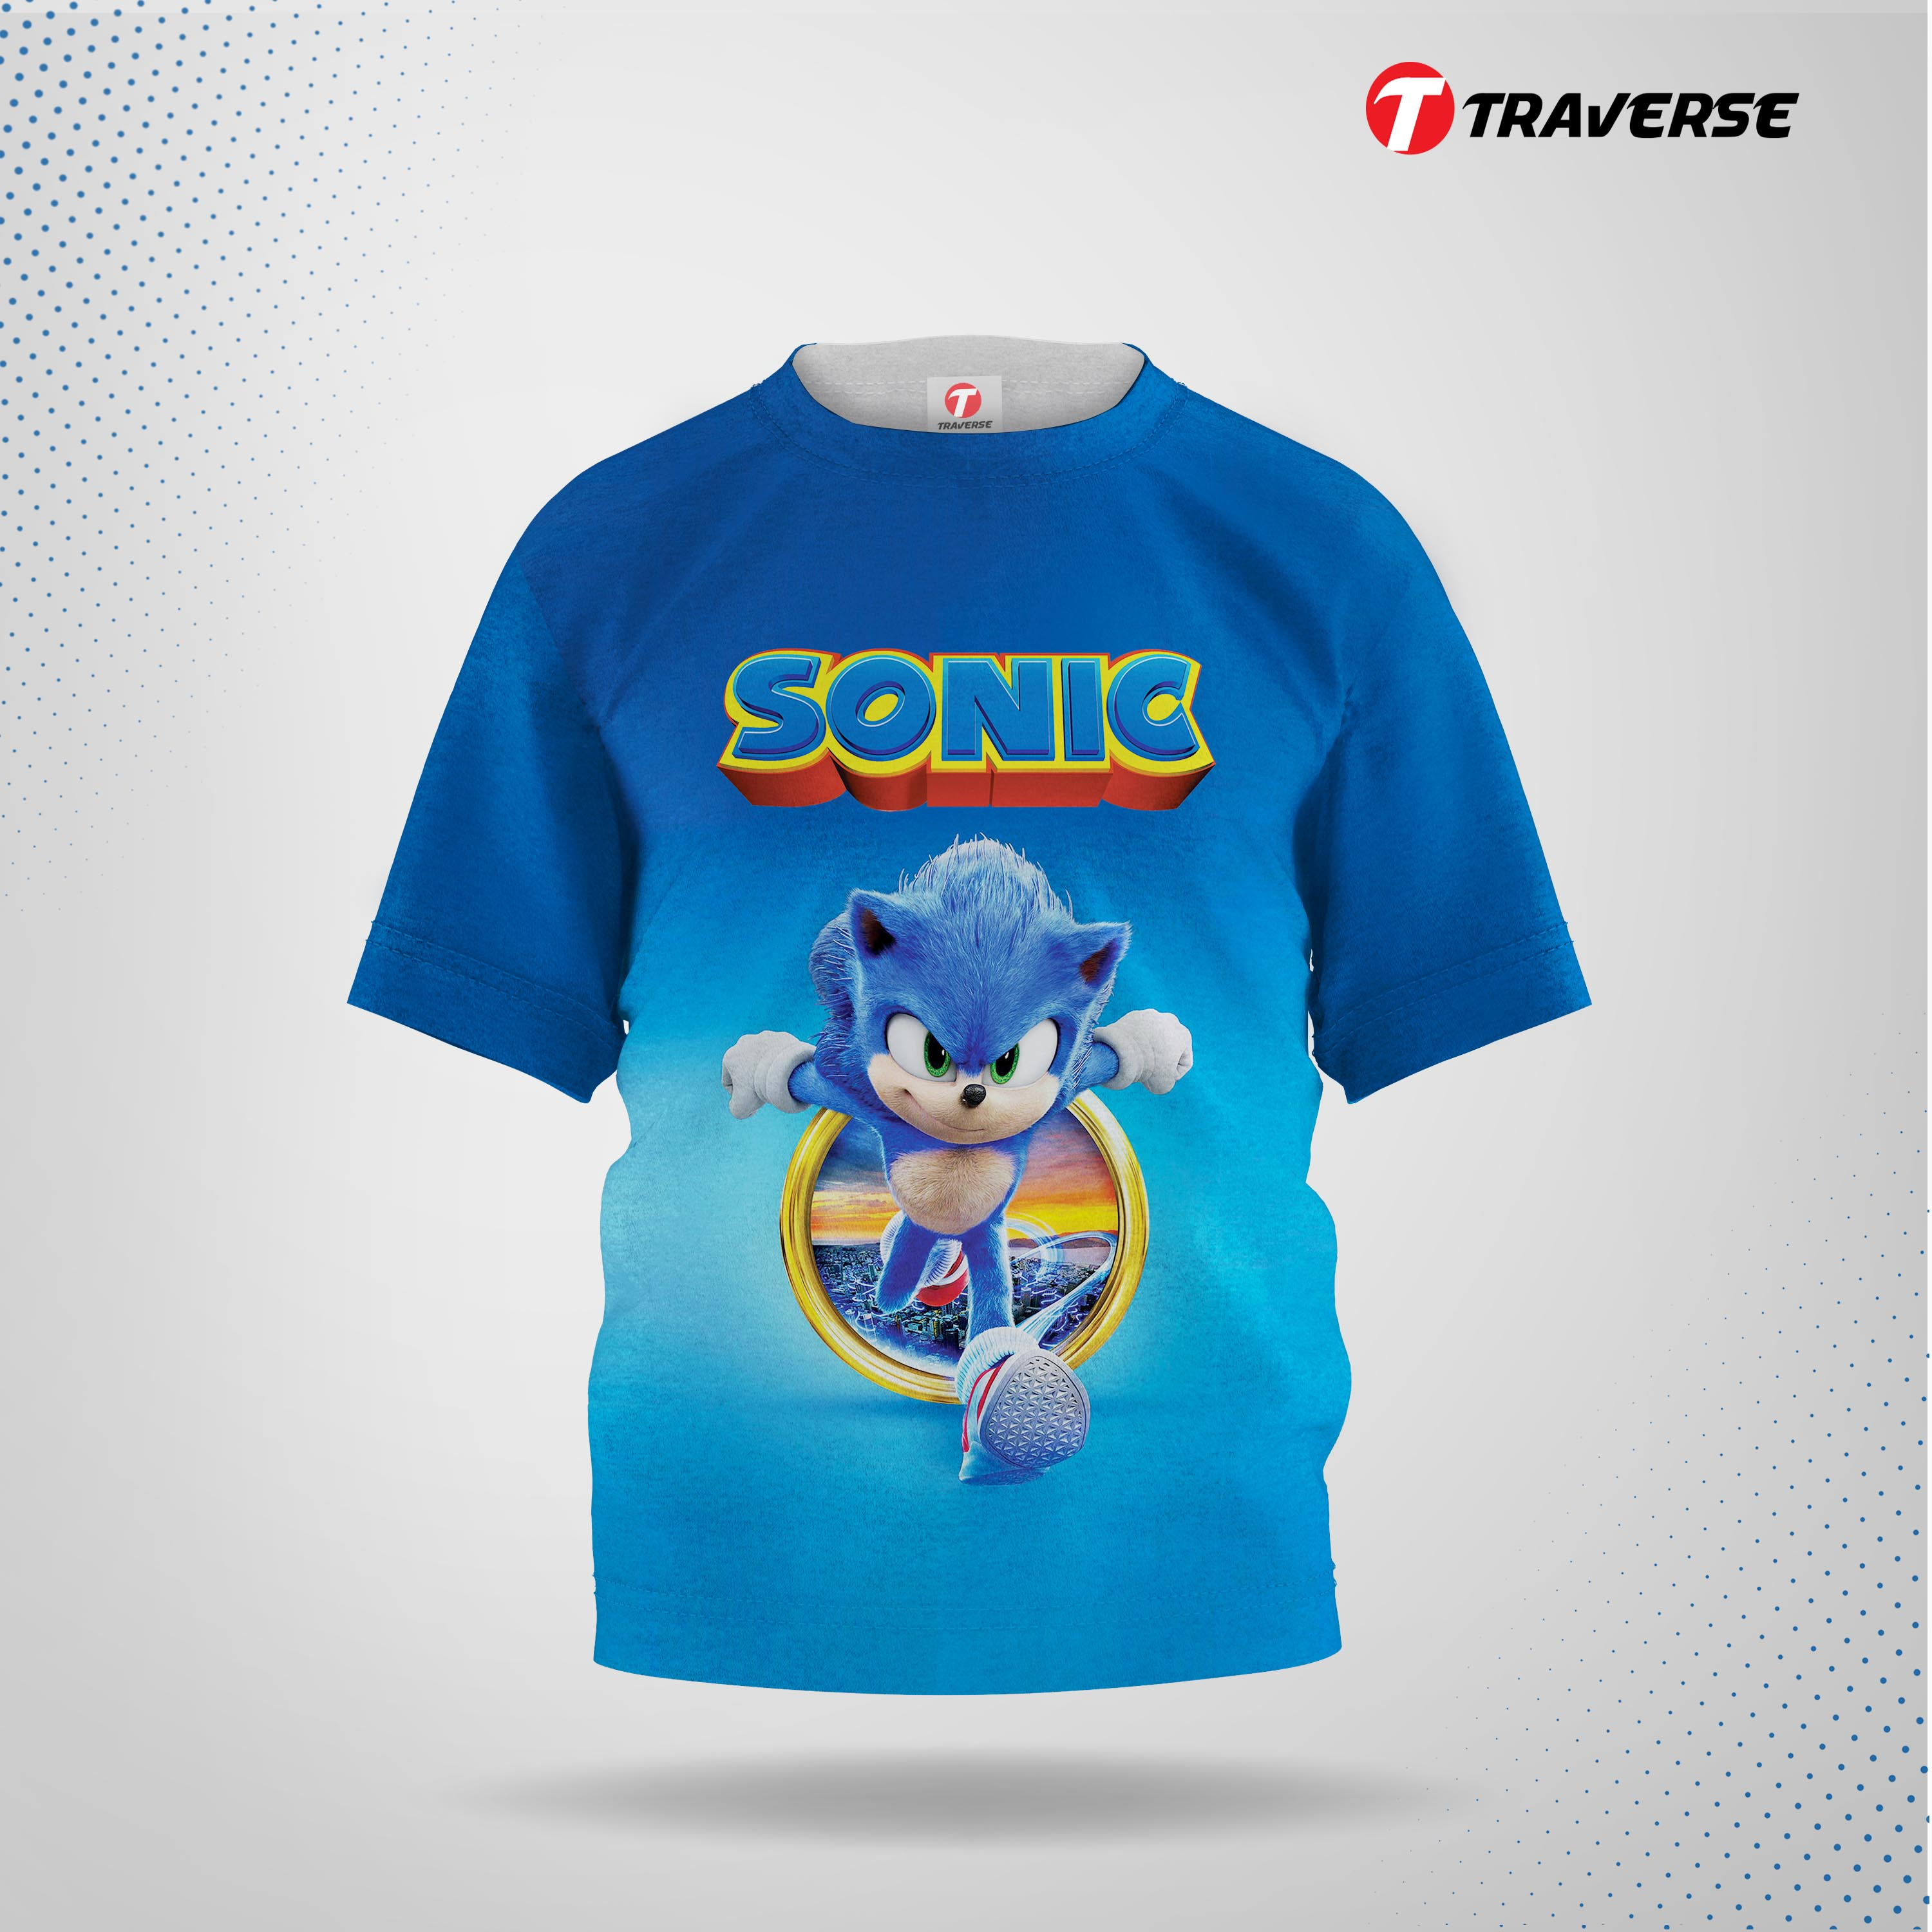 Sonic Digitally Printed Fashion T-shirts for  Kid's by Traverse